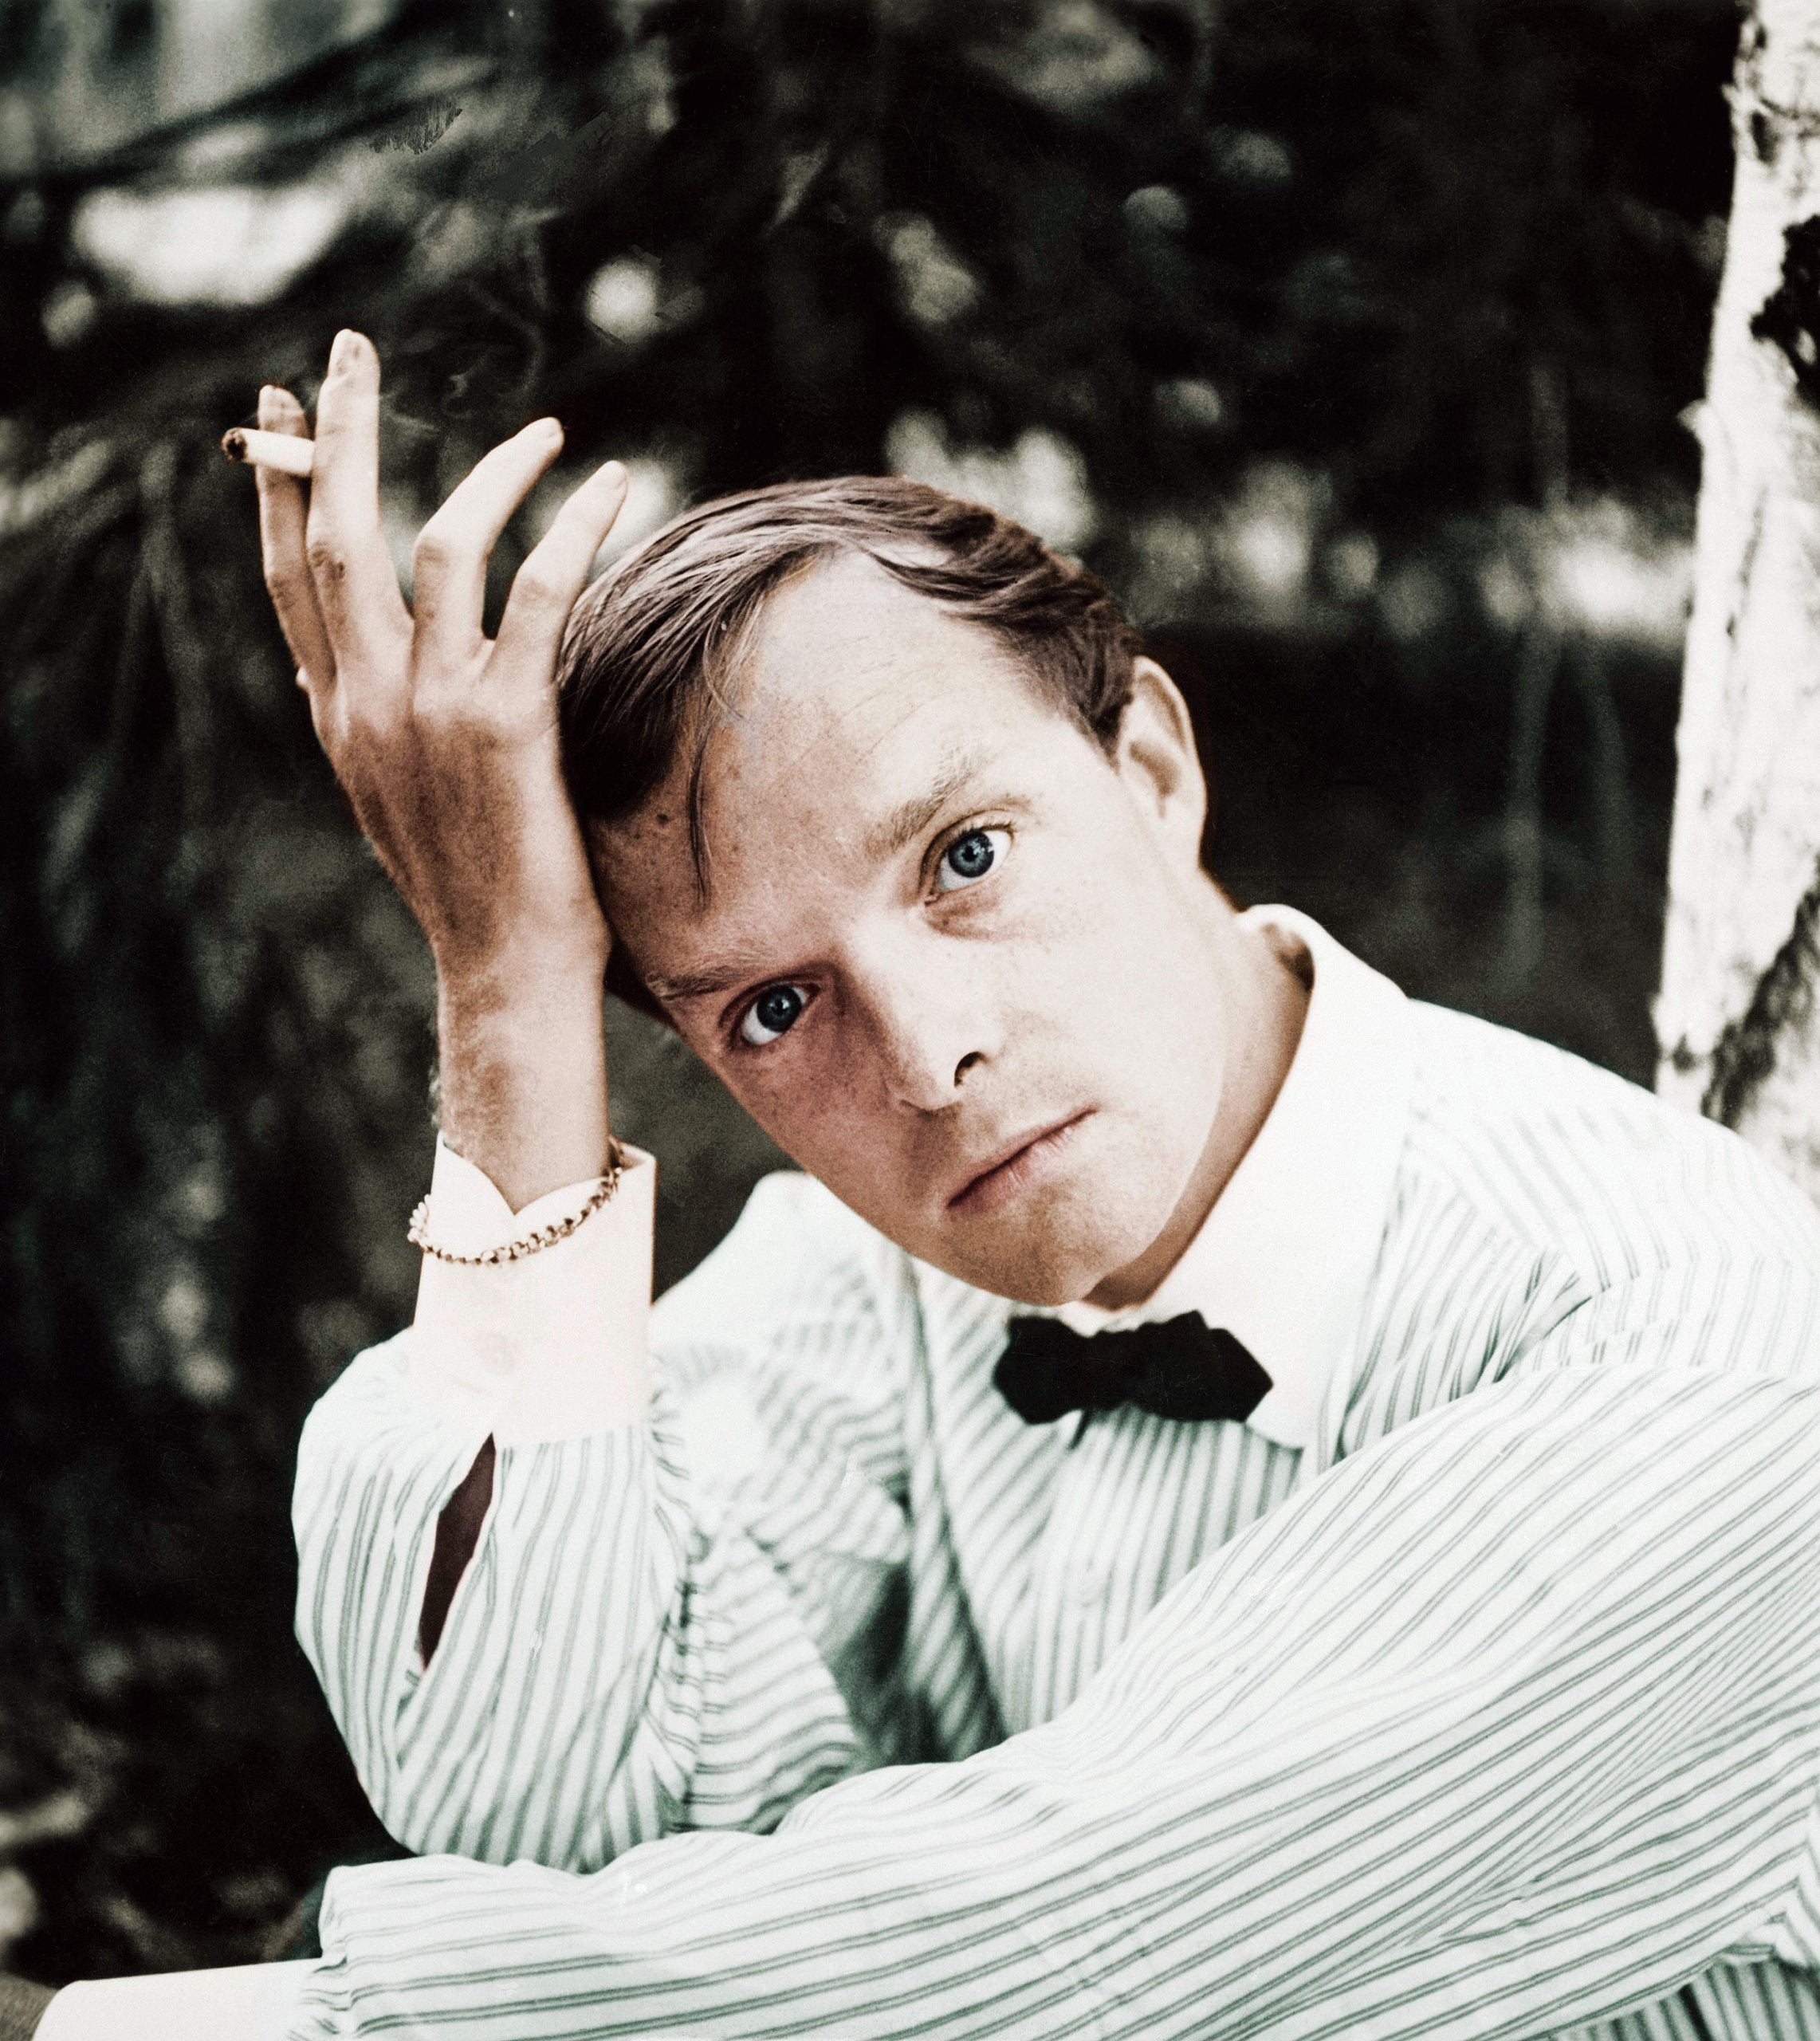 On the threshold: The Early Stories by Truman Capote